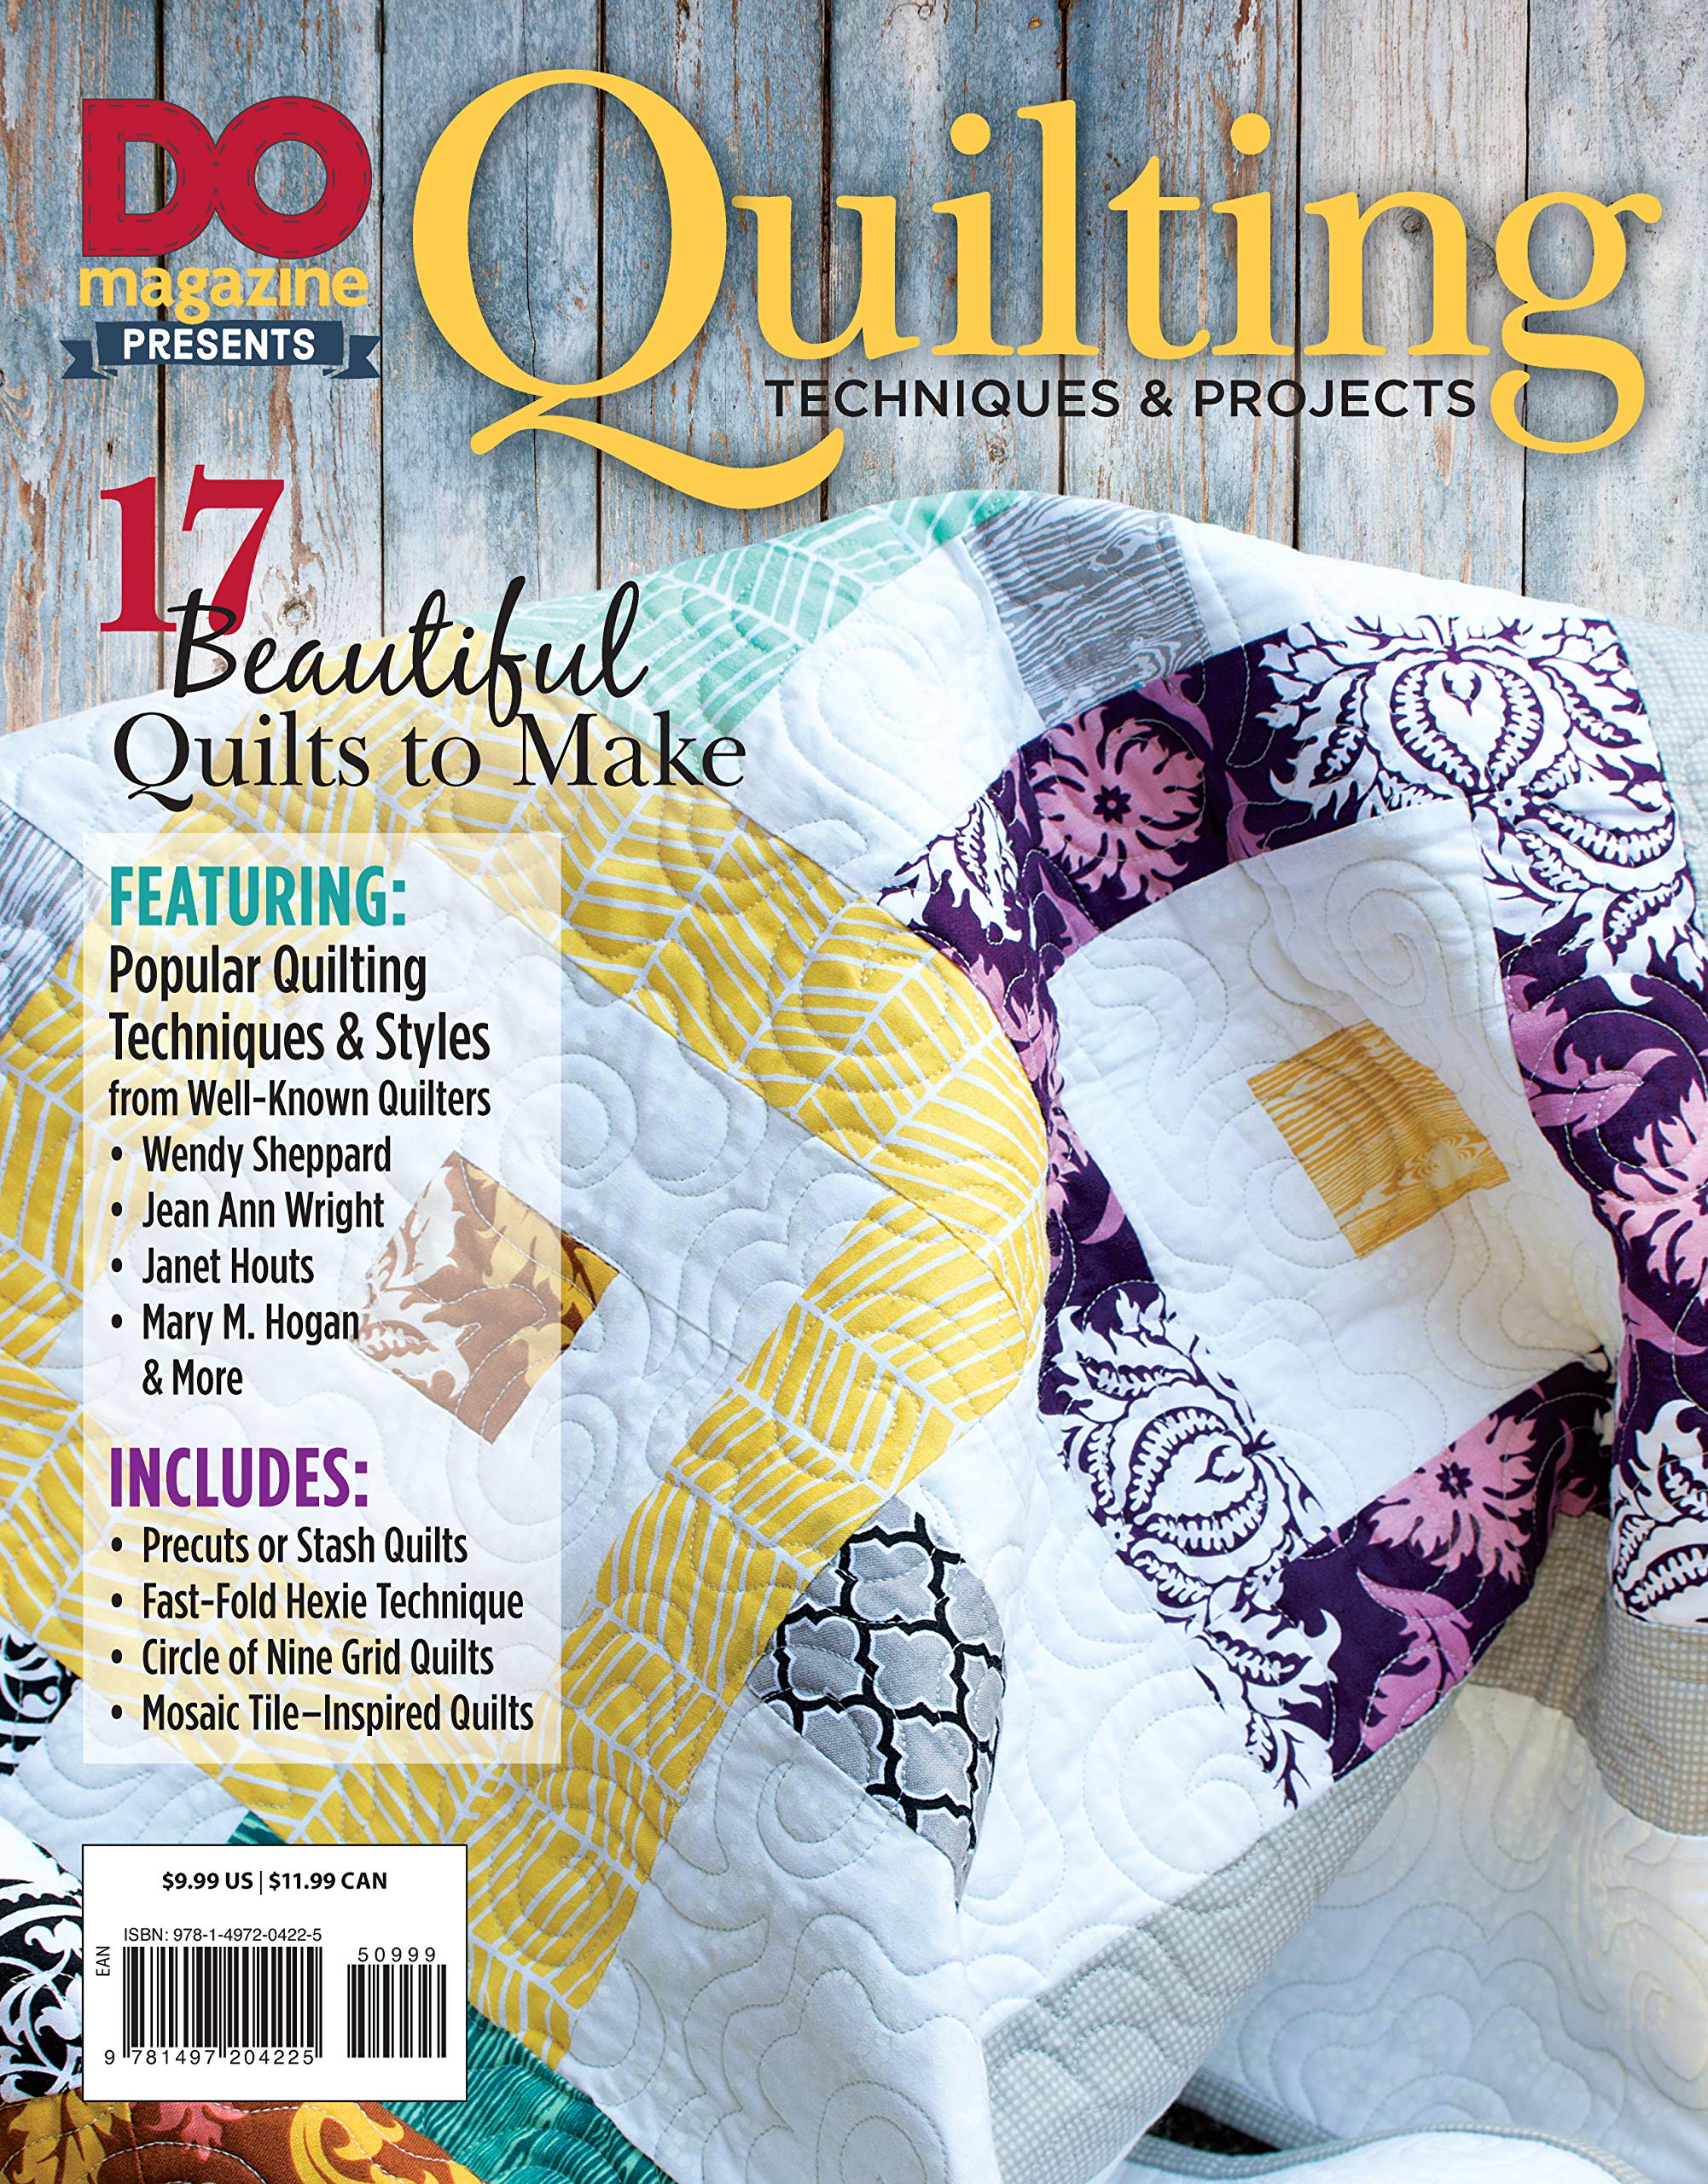 Do Magazine Presents Quilting Techniques Projects Design